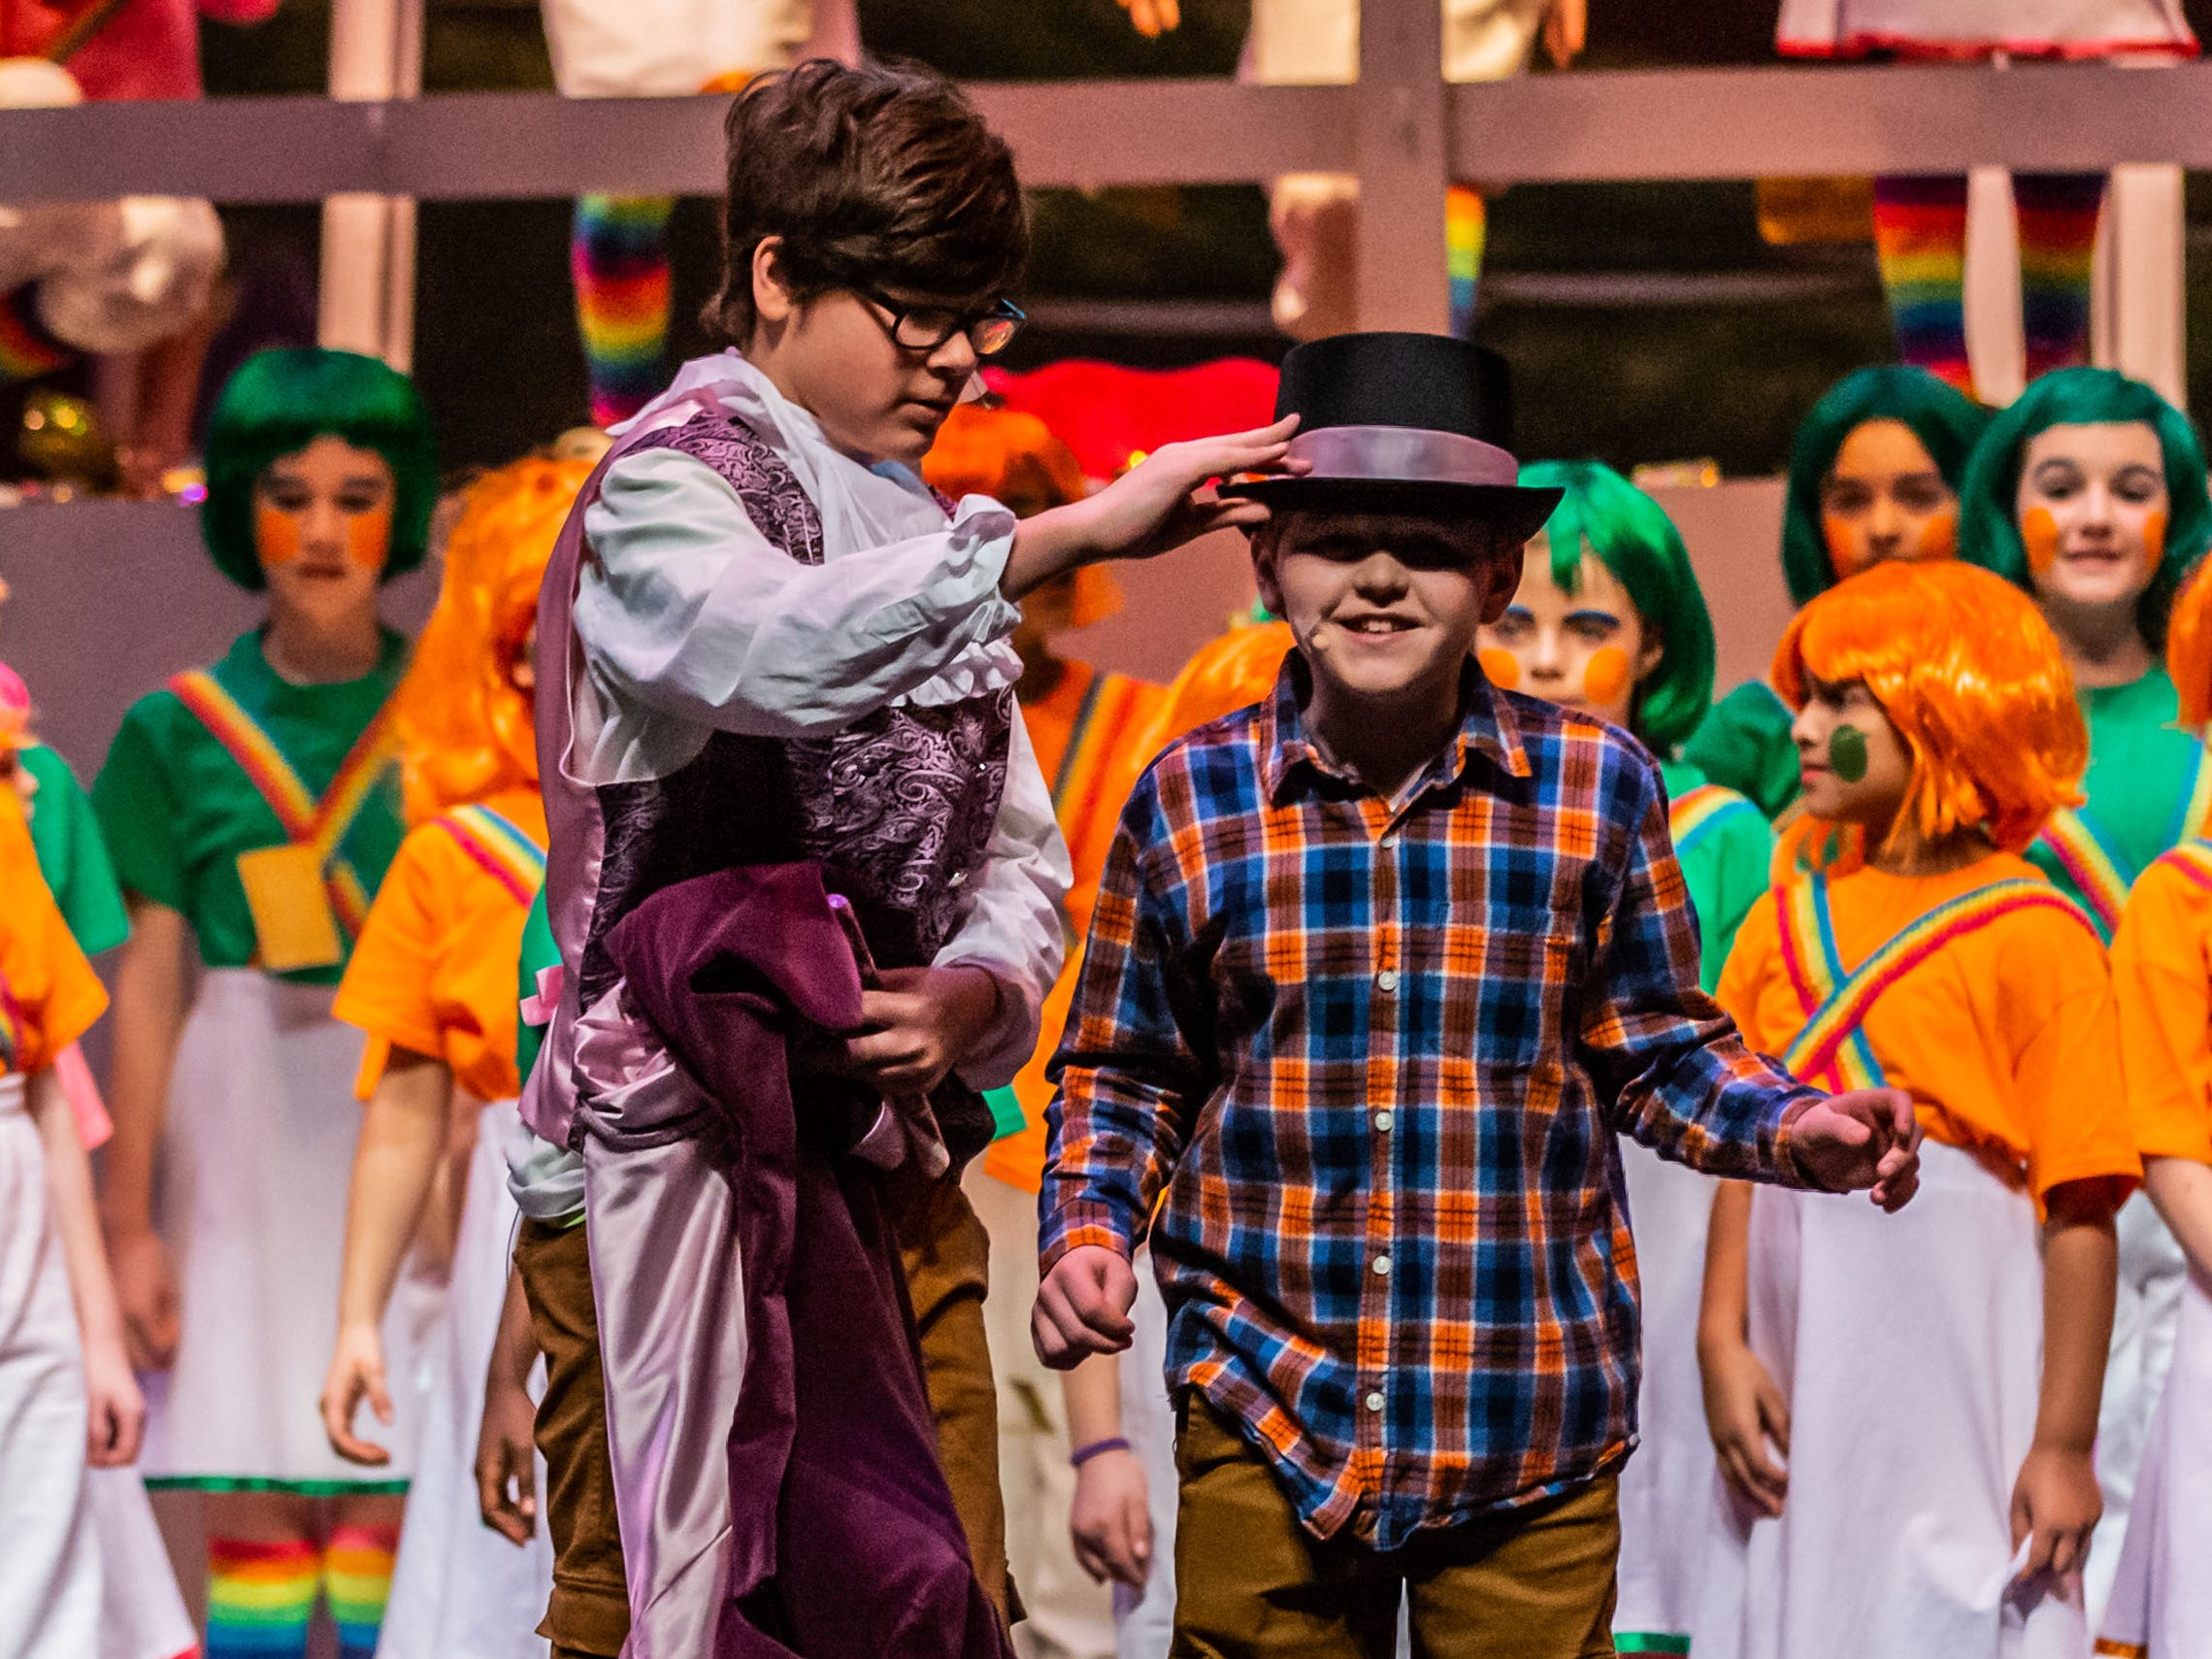 Brookfield Elementary students, Aidan Riddle (left) and Michael Foster, portray Willy Wonka and Charlie Bucket in a scene from Roald Dahl's Willy Wonka Jr. during rehearsal at the Sharon Lynne Wilson Center for the Arts in Brookfield on Saturday, March 2, 2019. Public performances are at 7 p.m. on March 2 and 2 p.m. on March 3.